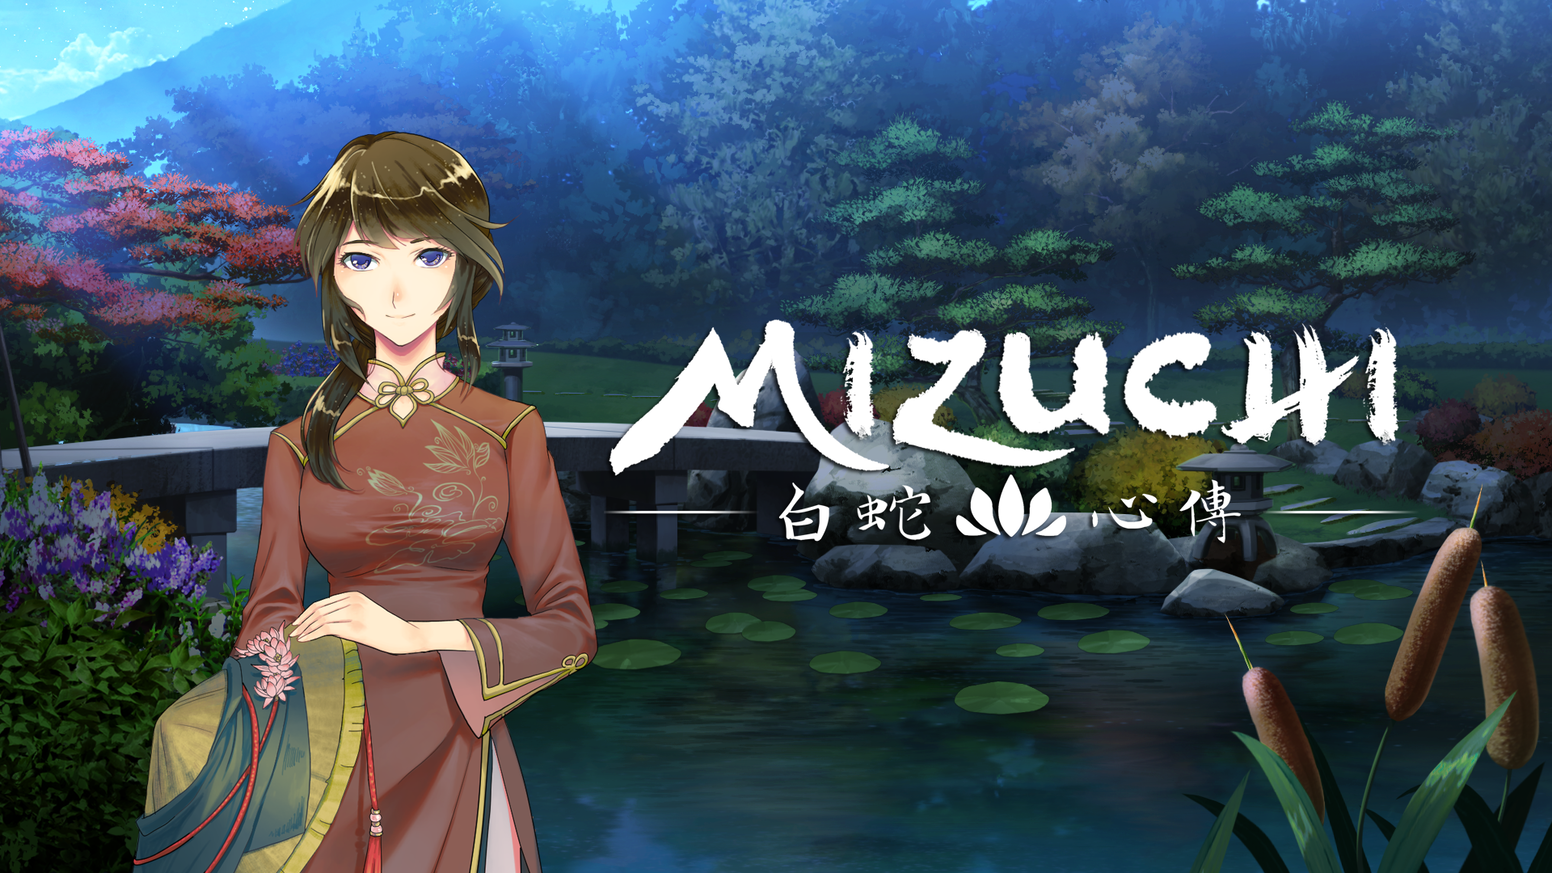 Mizuchi is a fantasy romance visual novel, inspired by the Legend of the White Serpent with a yuri twist and other folklores mixed in.